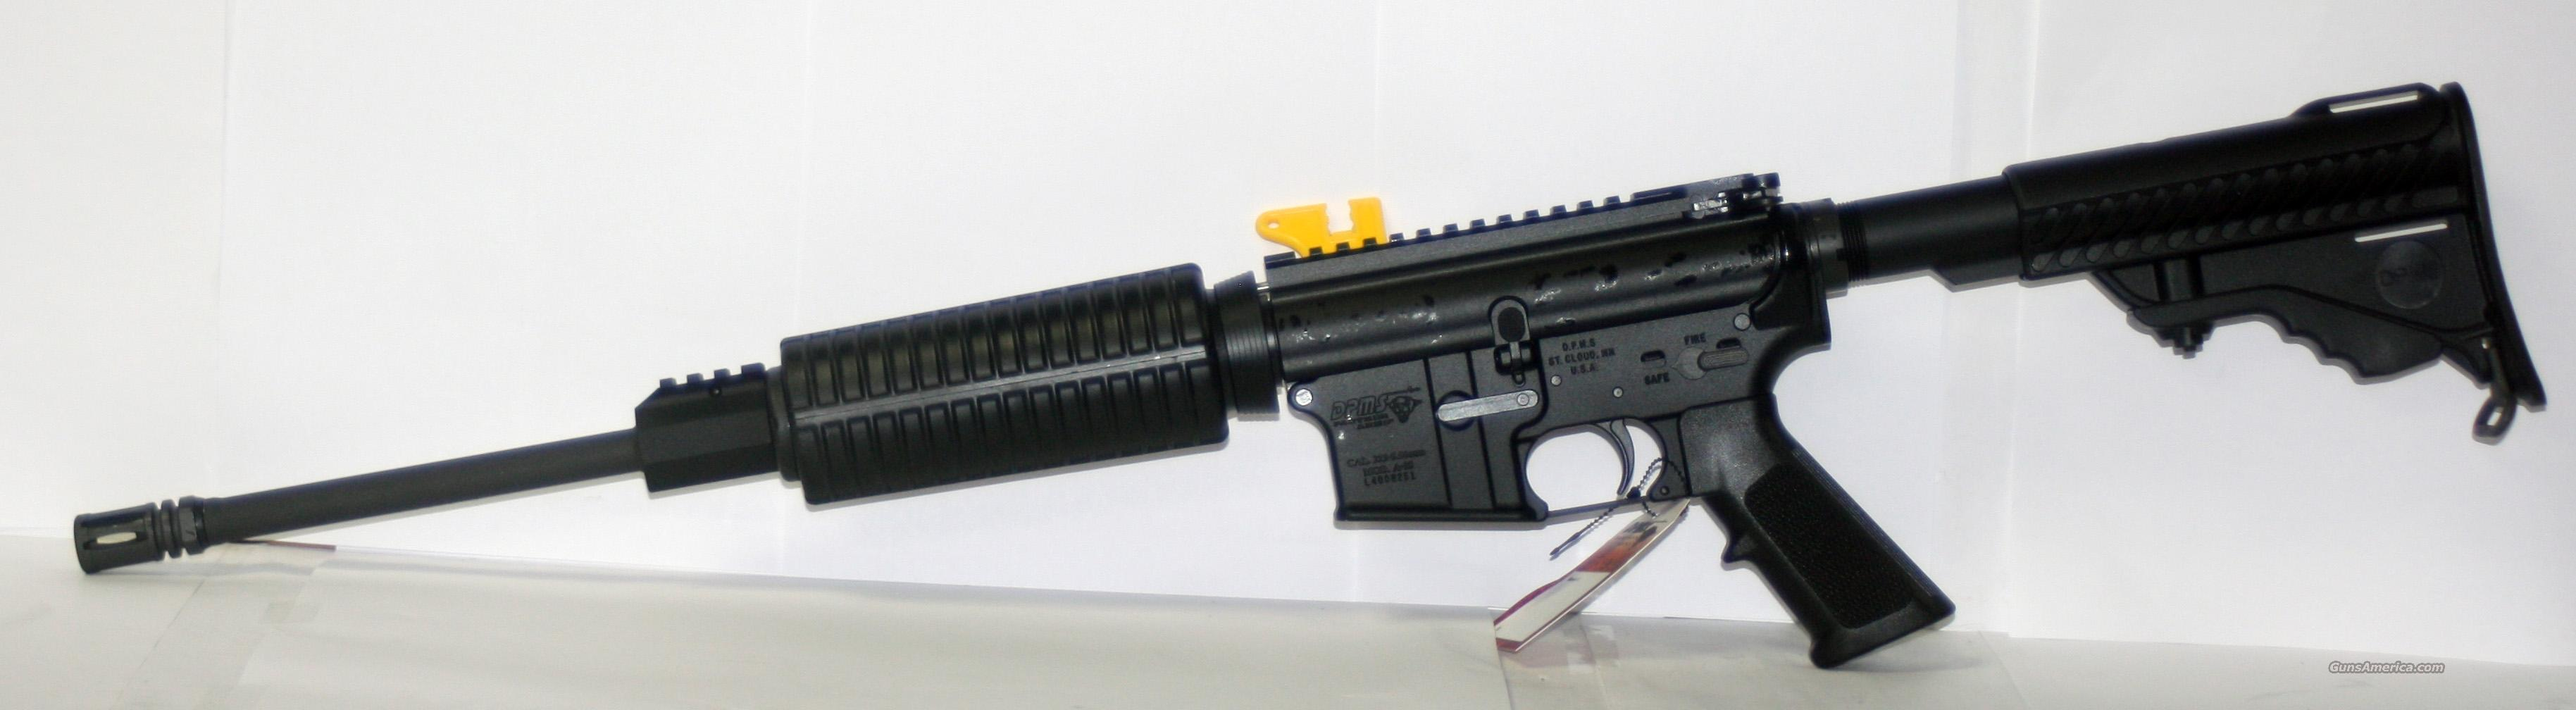 DPMS-PANTHER ARMS  Guns > Rifles > DPMS - Panther Arms > Complete Rifle